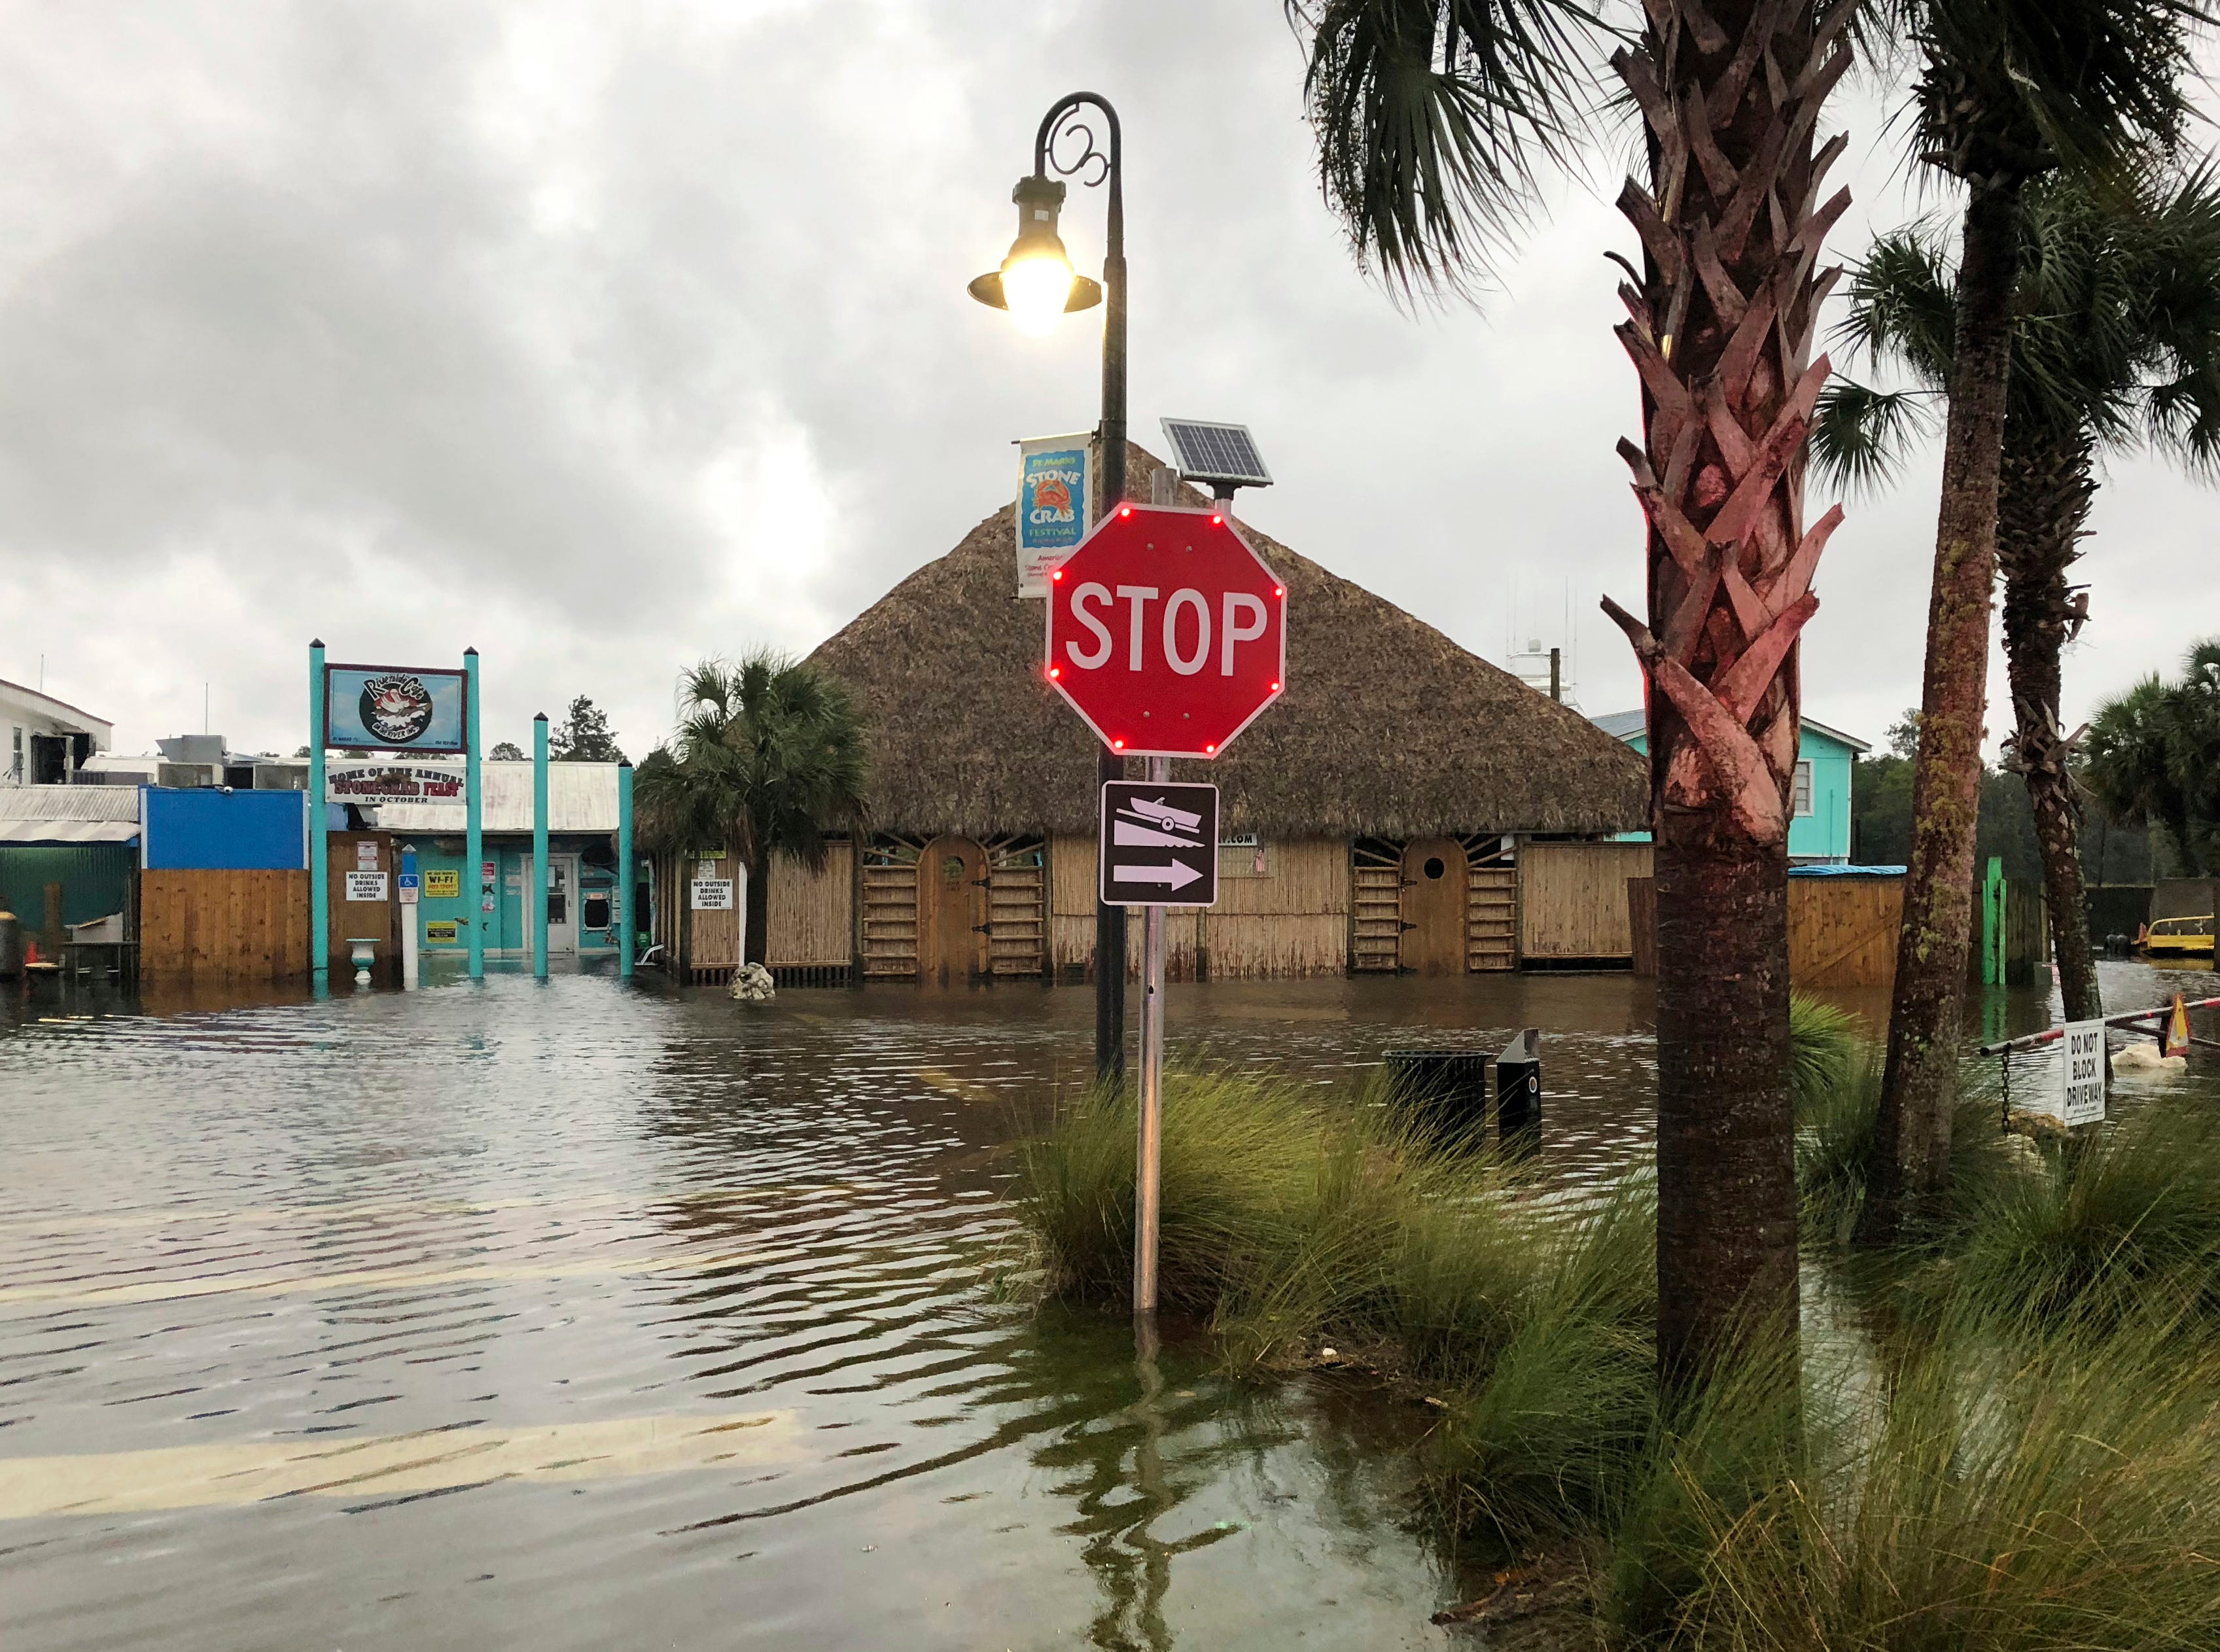 The St. Marks River overflows into the city of St. Marks, Fla., ahead of Hurricane Michael, Wednesday, Oct. 10, 2018.  The hurricane center says Michael will be the first Category 4 hurricane to make landfall on the Florida Panhandle.